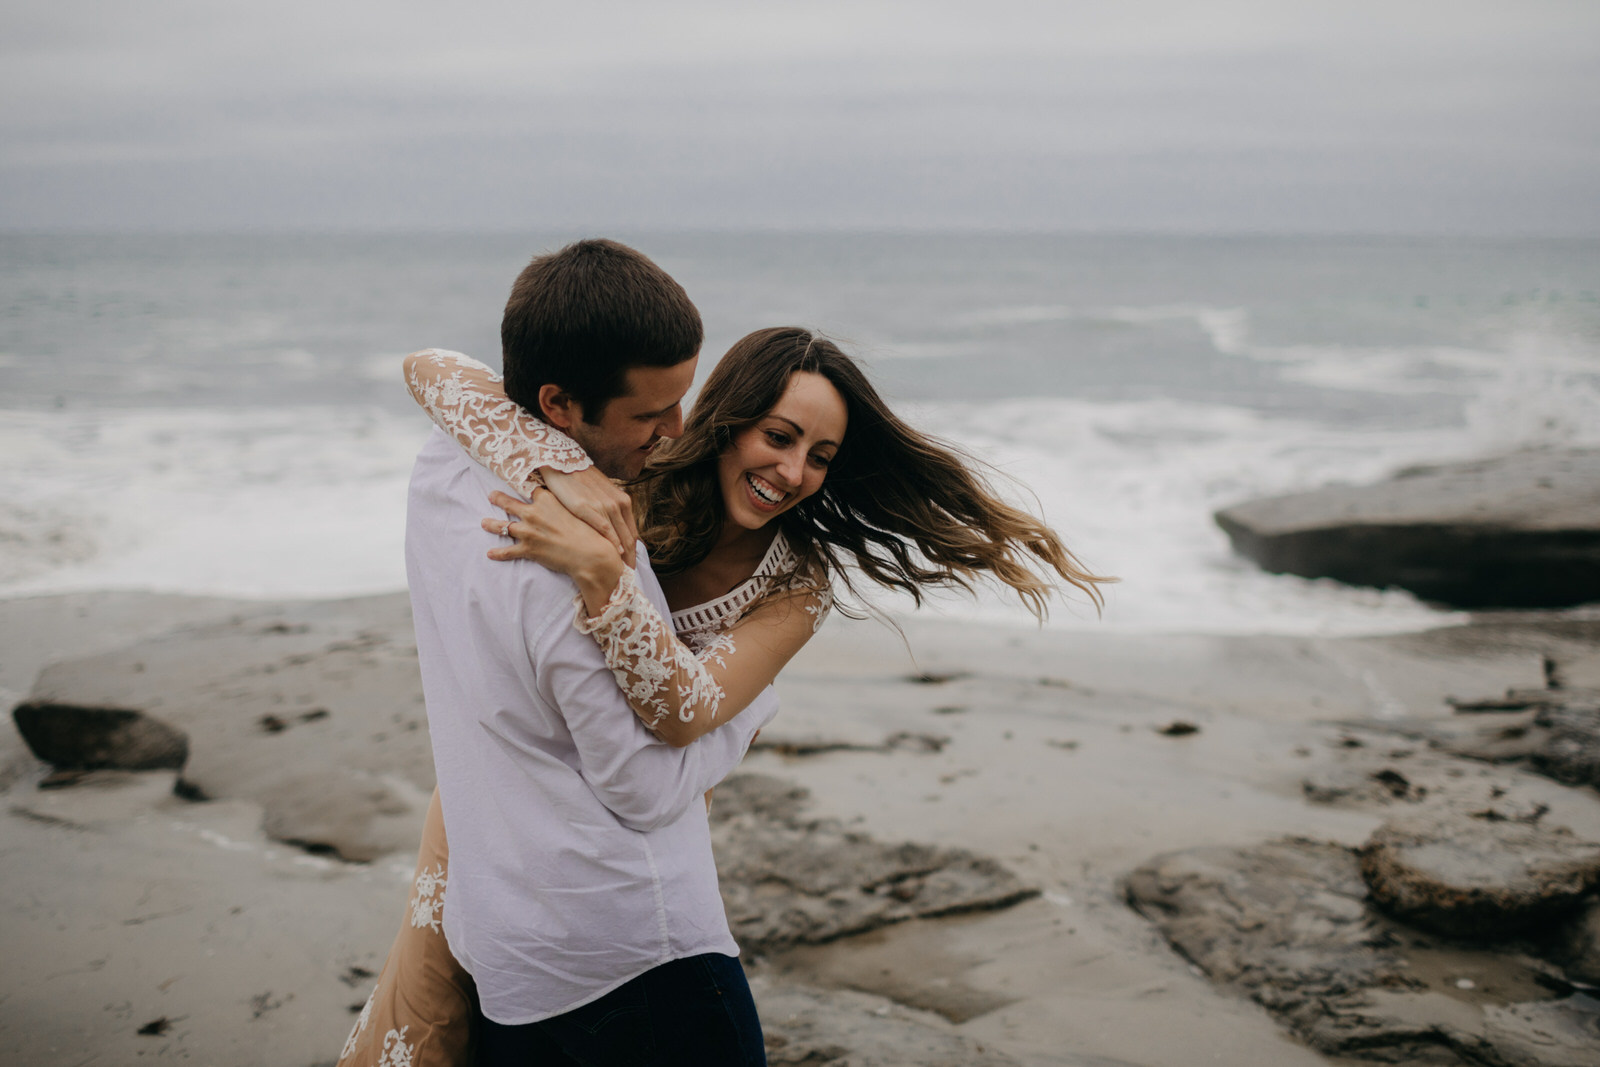 Widnansea Beach Engagement Shoot